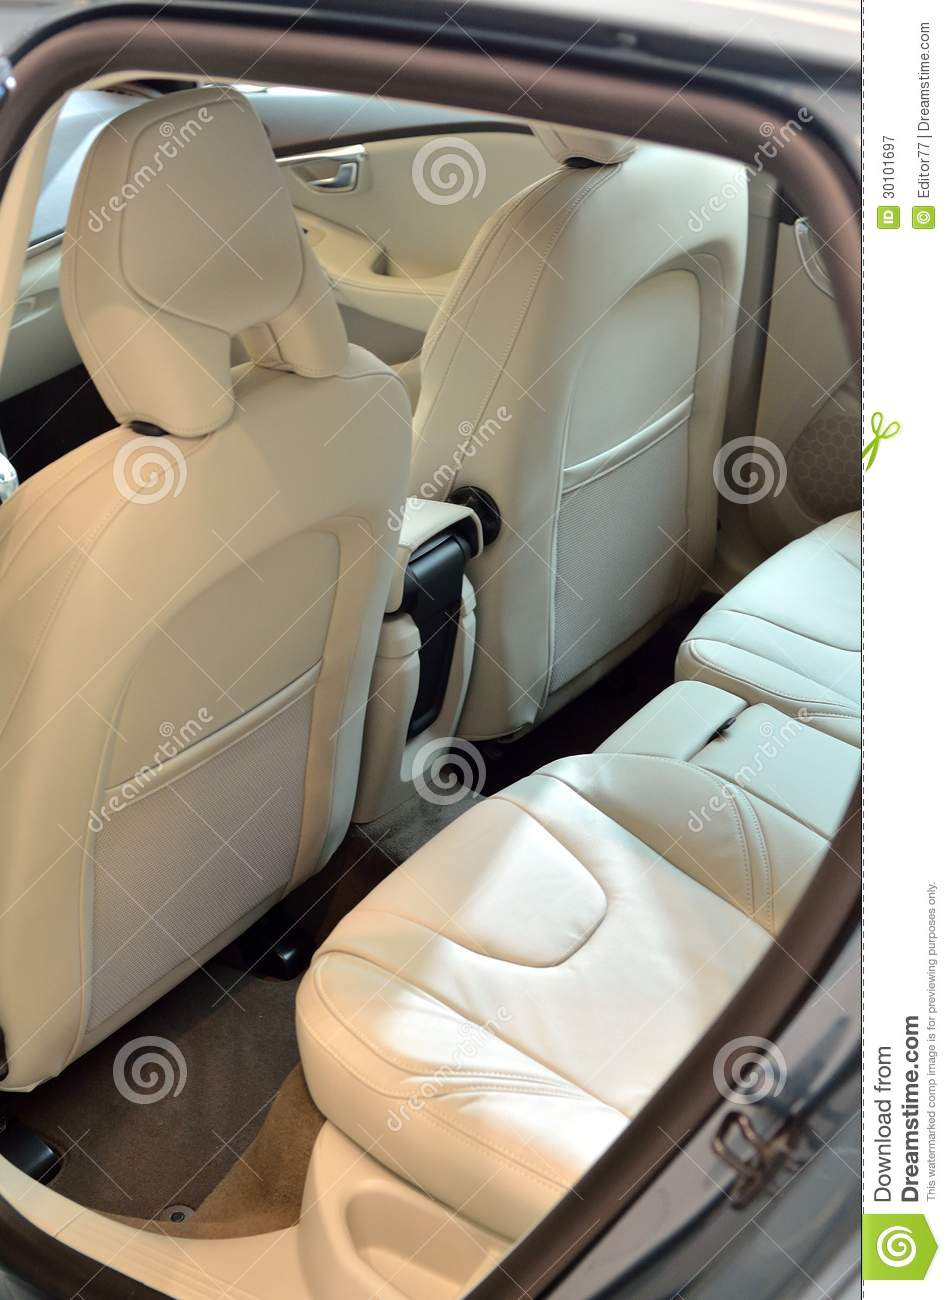 Car Seat Headrest White Leather Seats Inside Car Stock Image - Image: 30101697